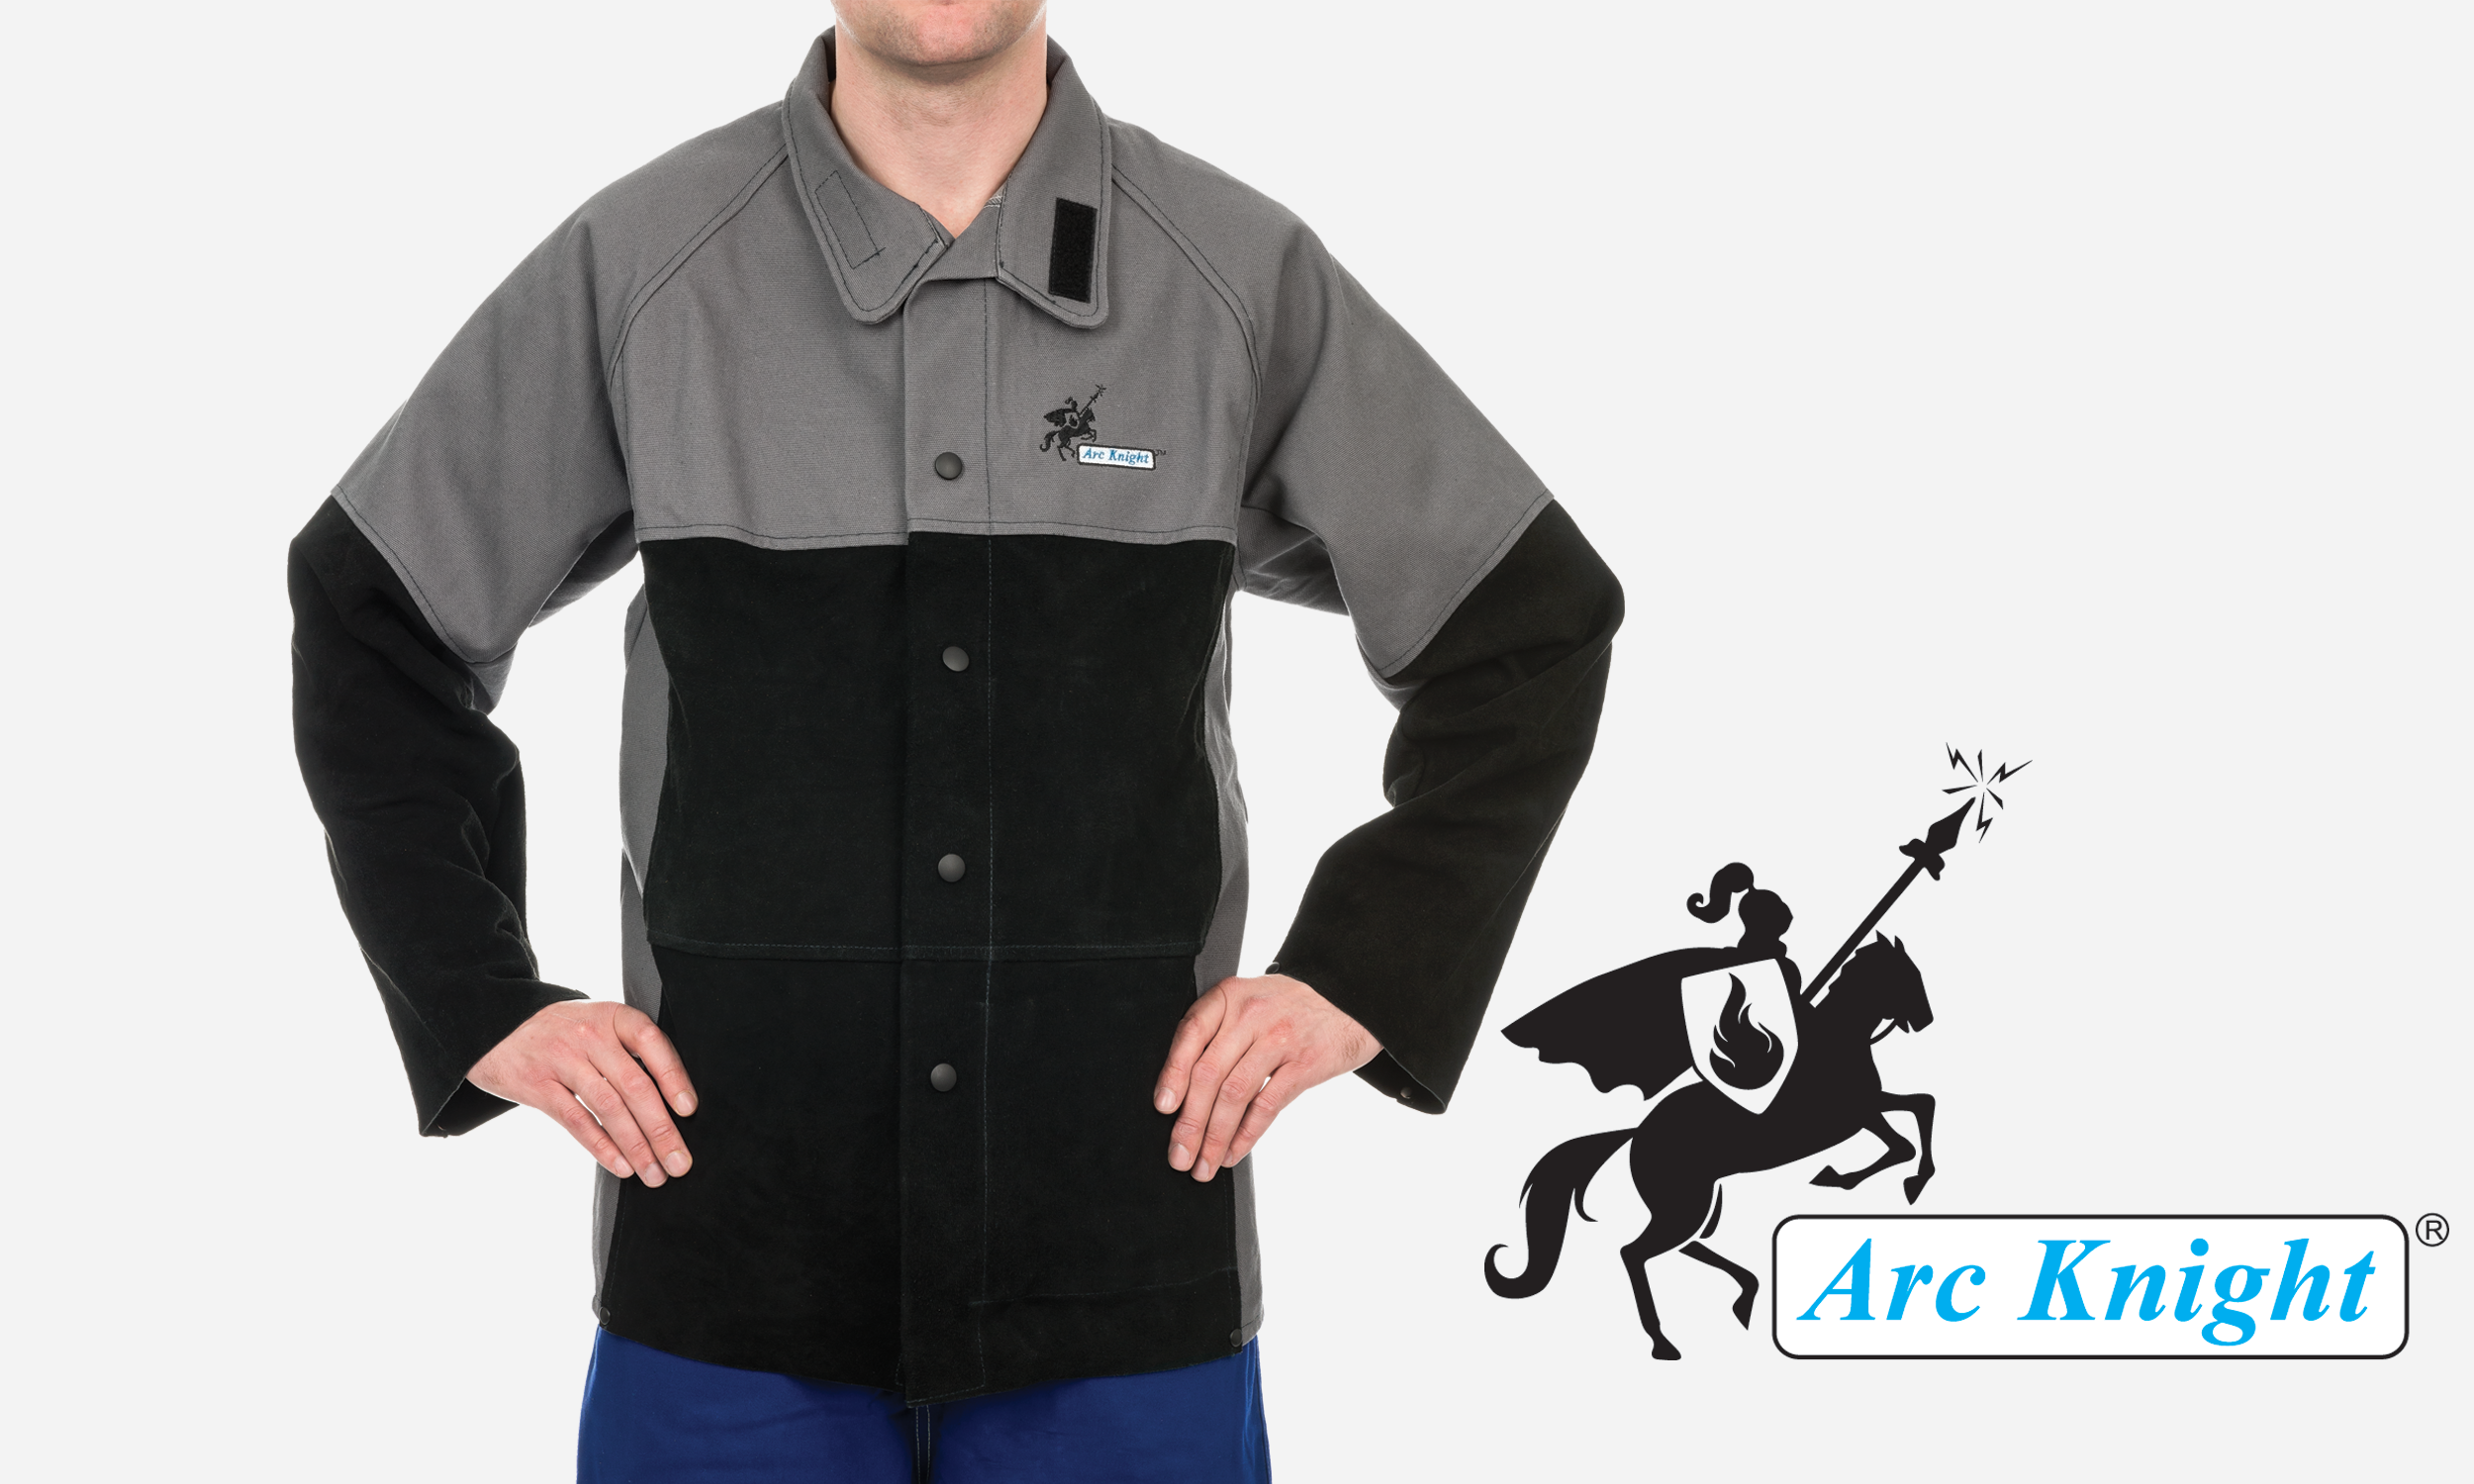 38-4350 Arc Knight Jacket.png